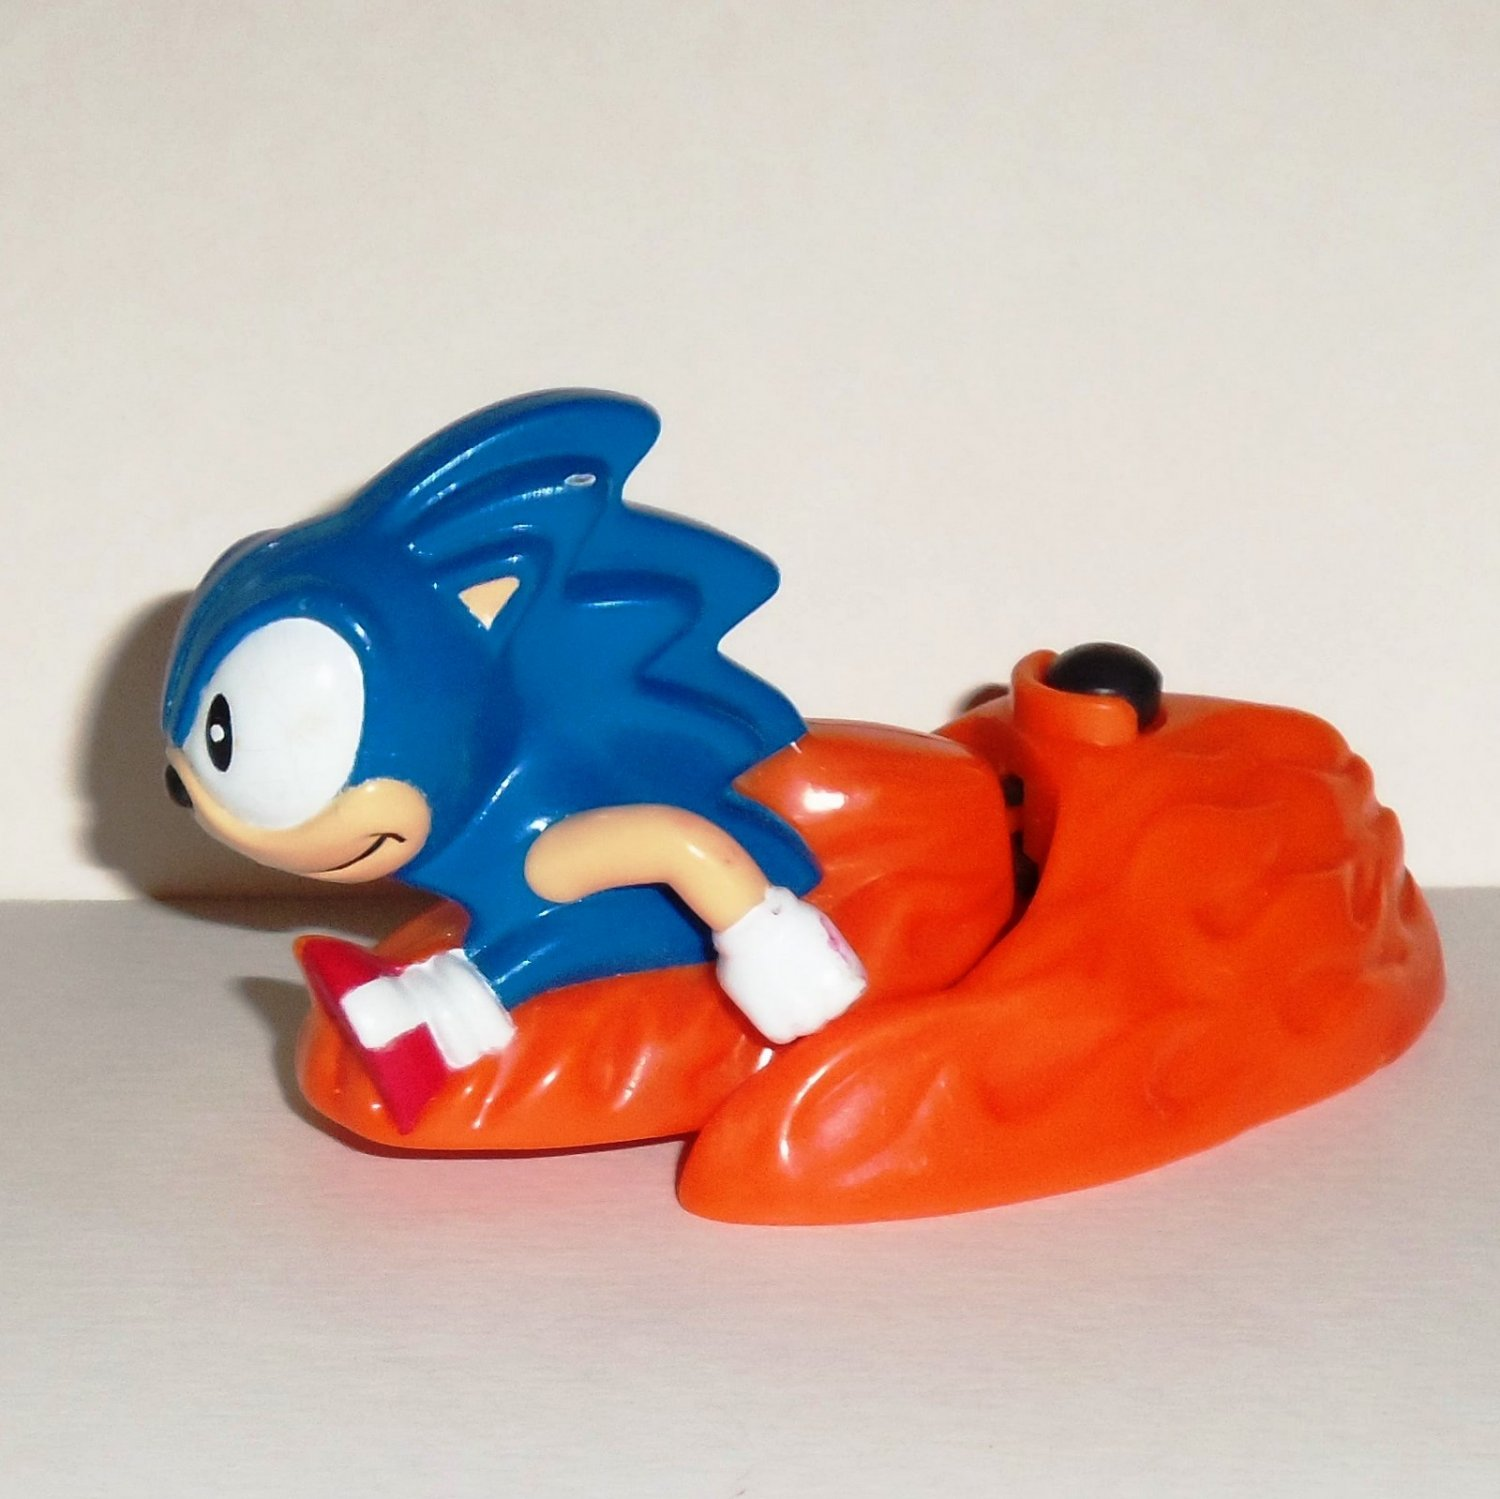 Kids Play With Sonic Exe Toys And Super Sonic Exe Toys: McDonald's 1994 Sonic The Hedgehog Happy Meal Toy Loose Used